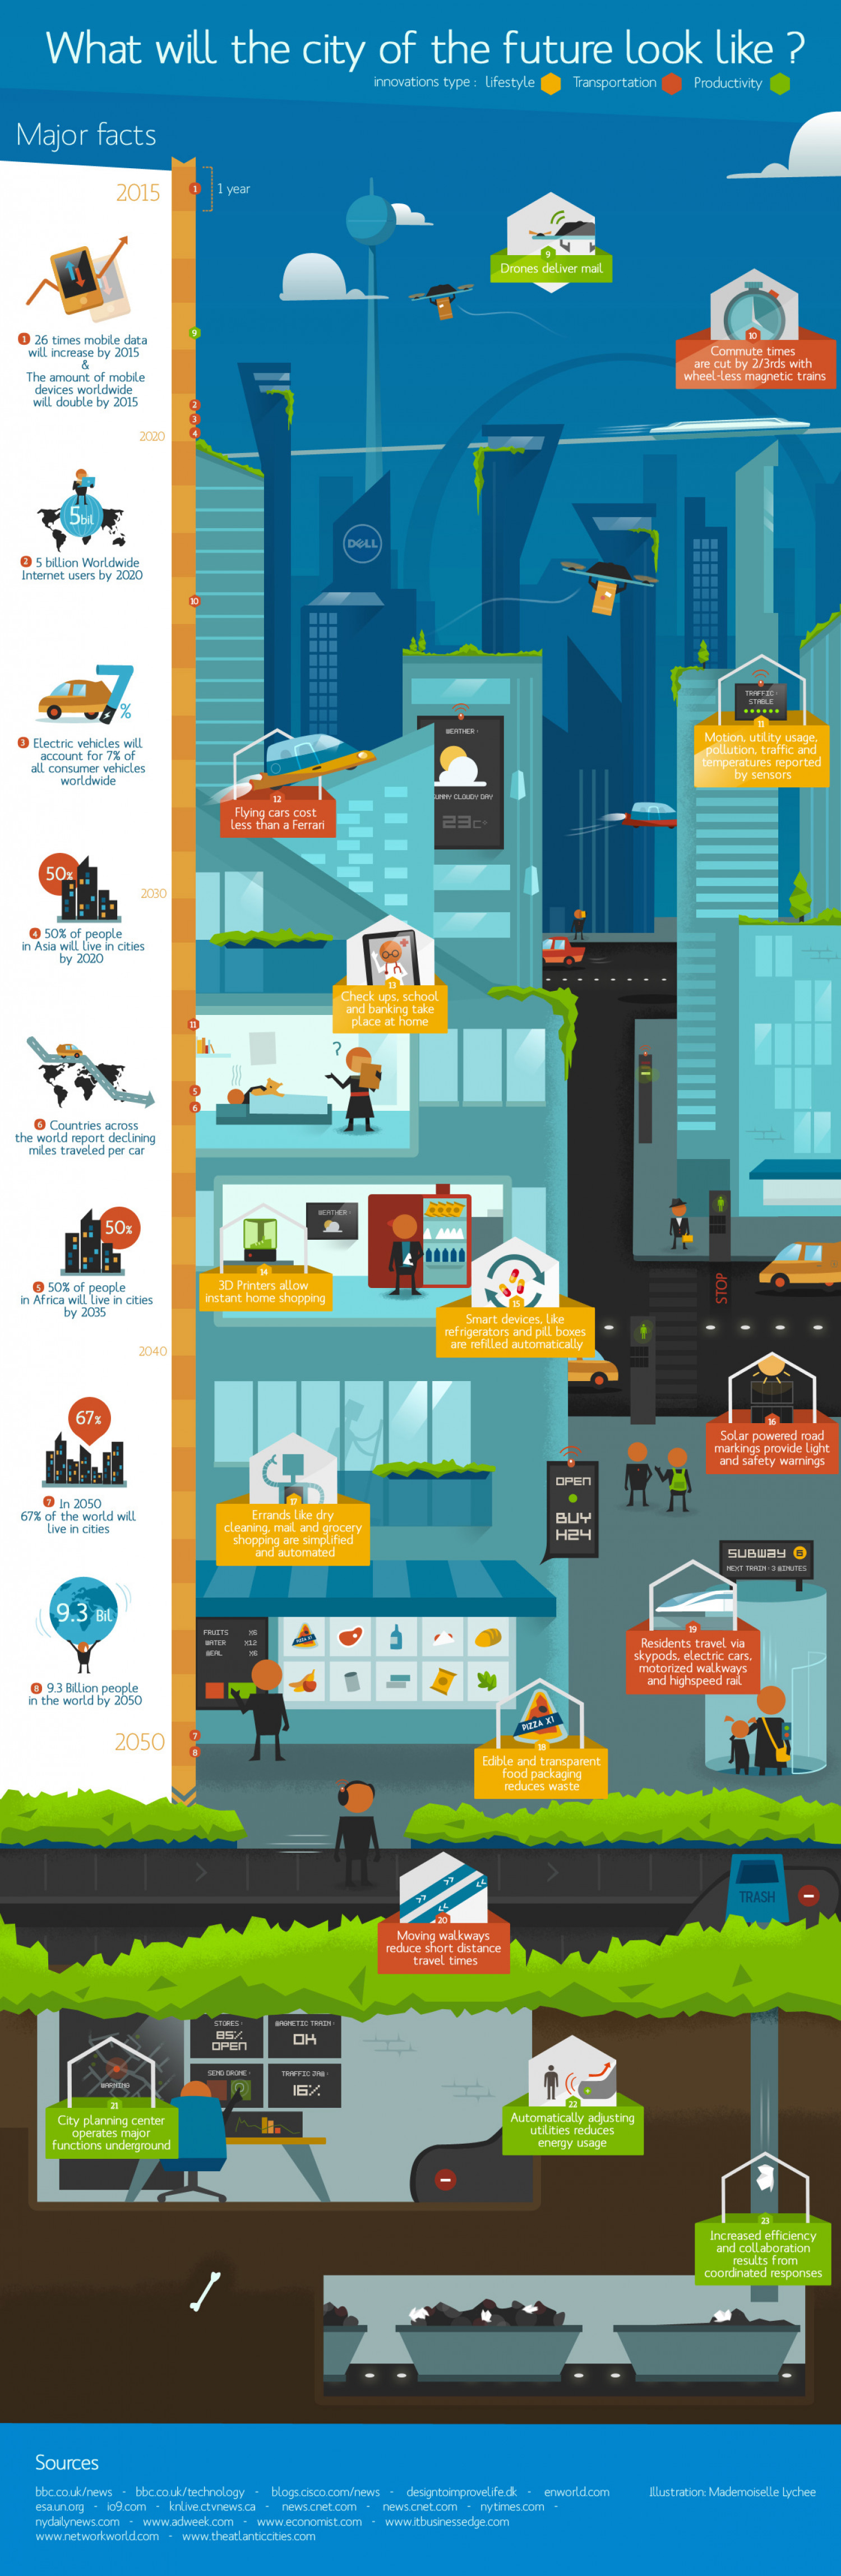 What Will The City Of The Future Look Like? [Infographic]